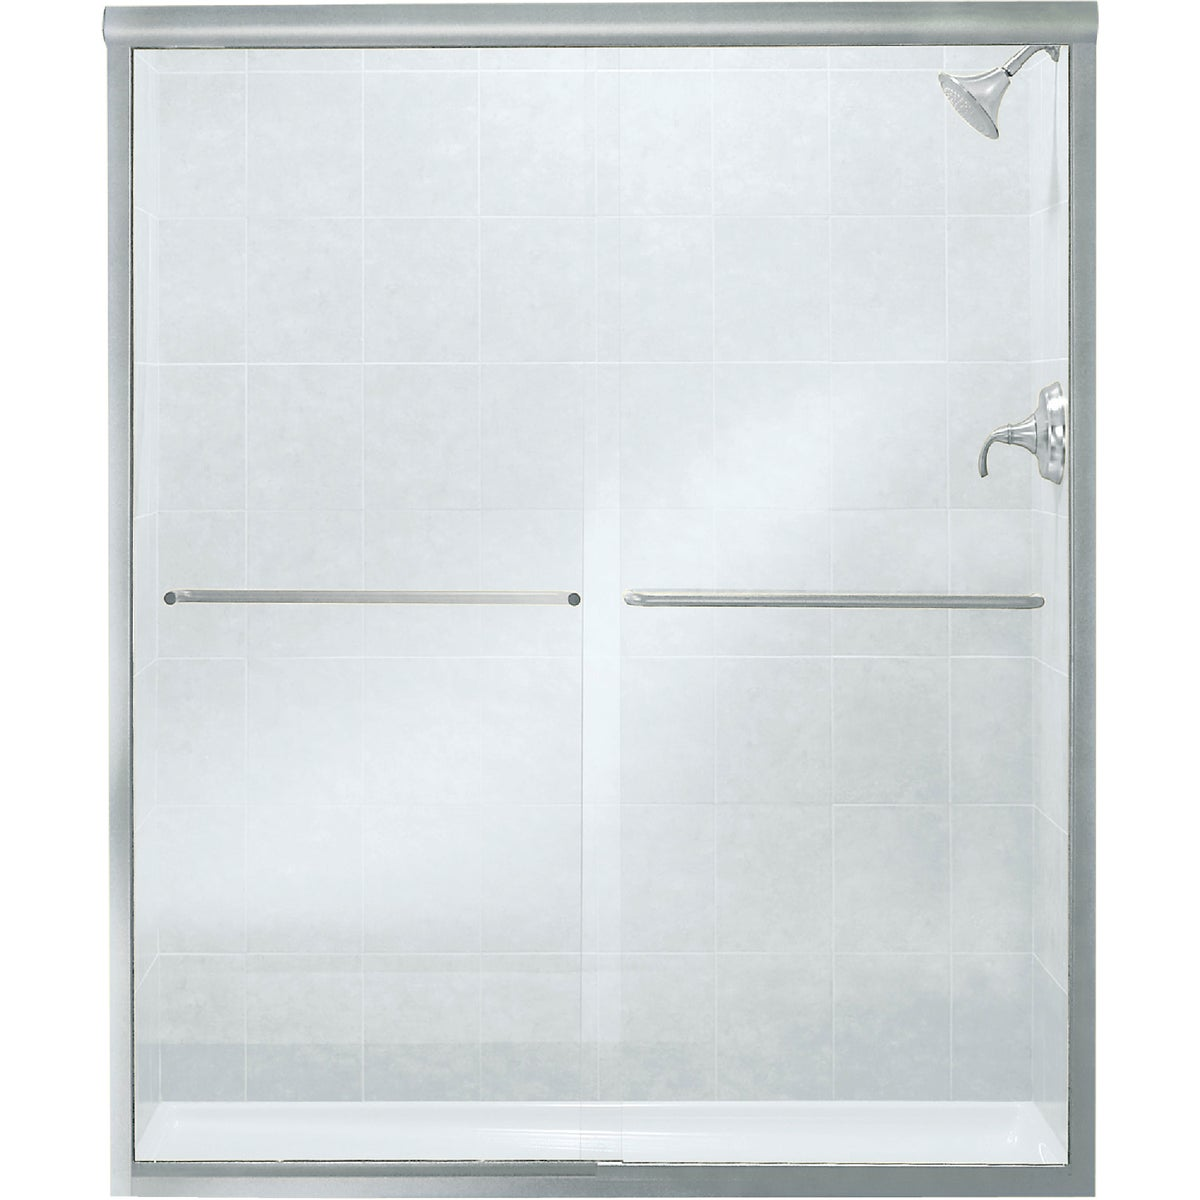 Sterling SILVER BY-PASS TUB DOOR 5475-59S-G05